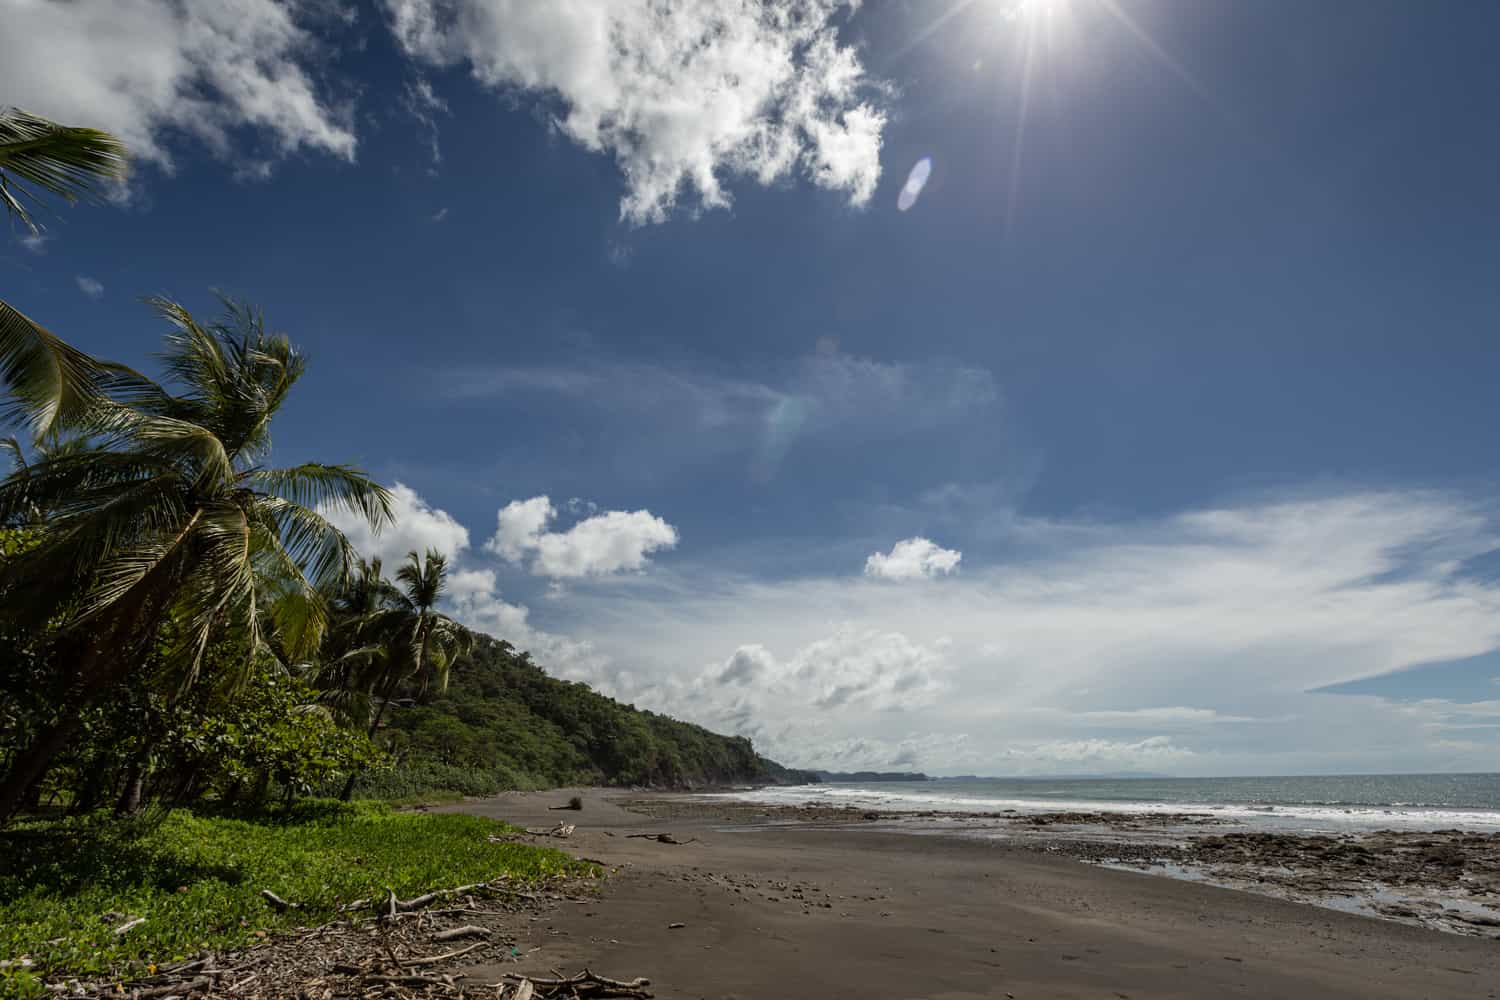 A view of the virgin beach at Hotel Punta Islita stretching in the distance bordered by tropical rainforest.